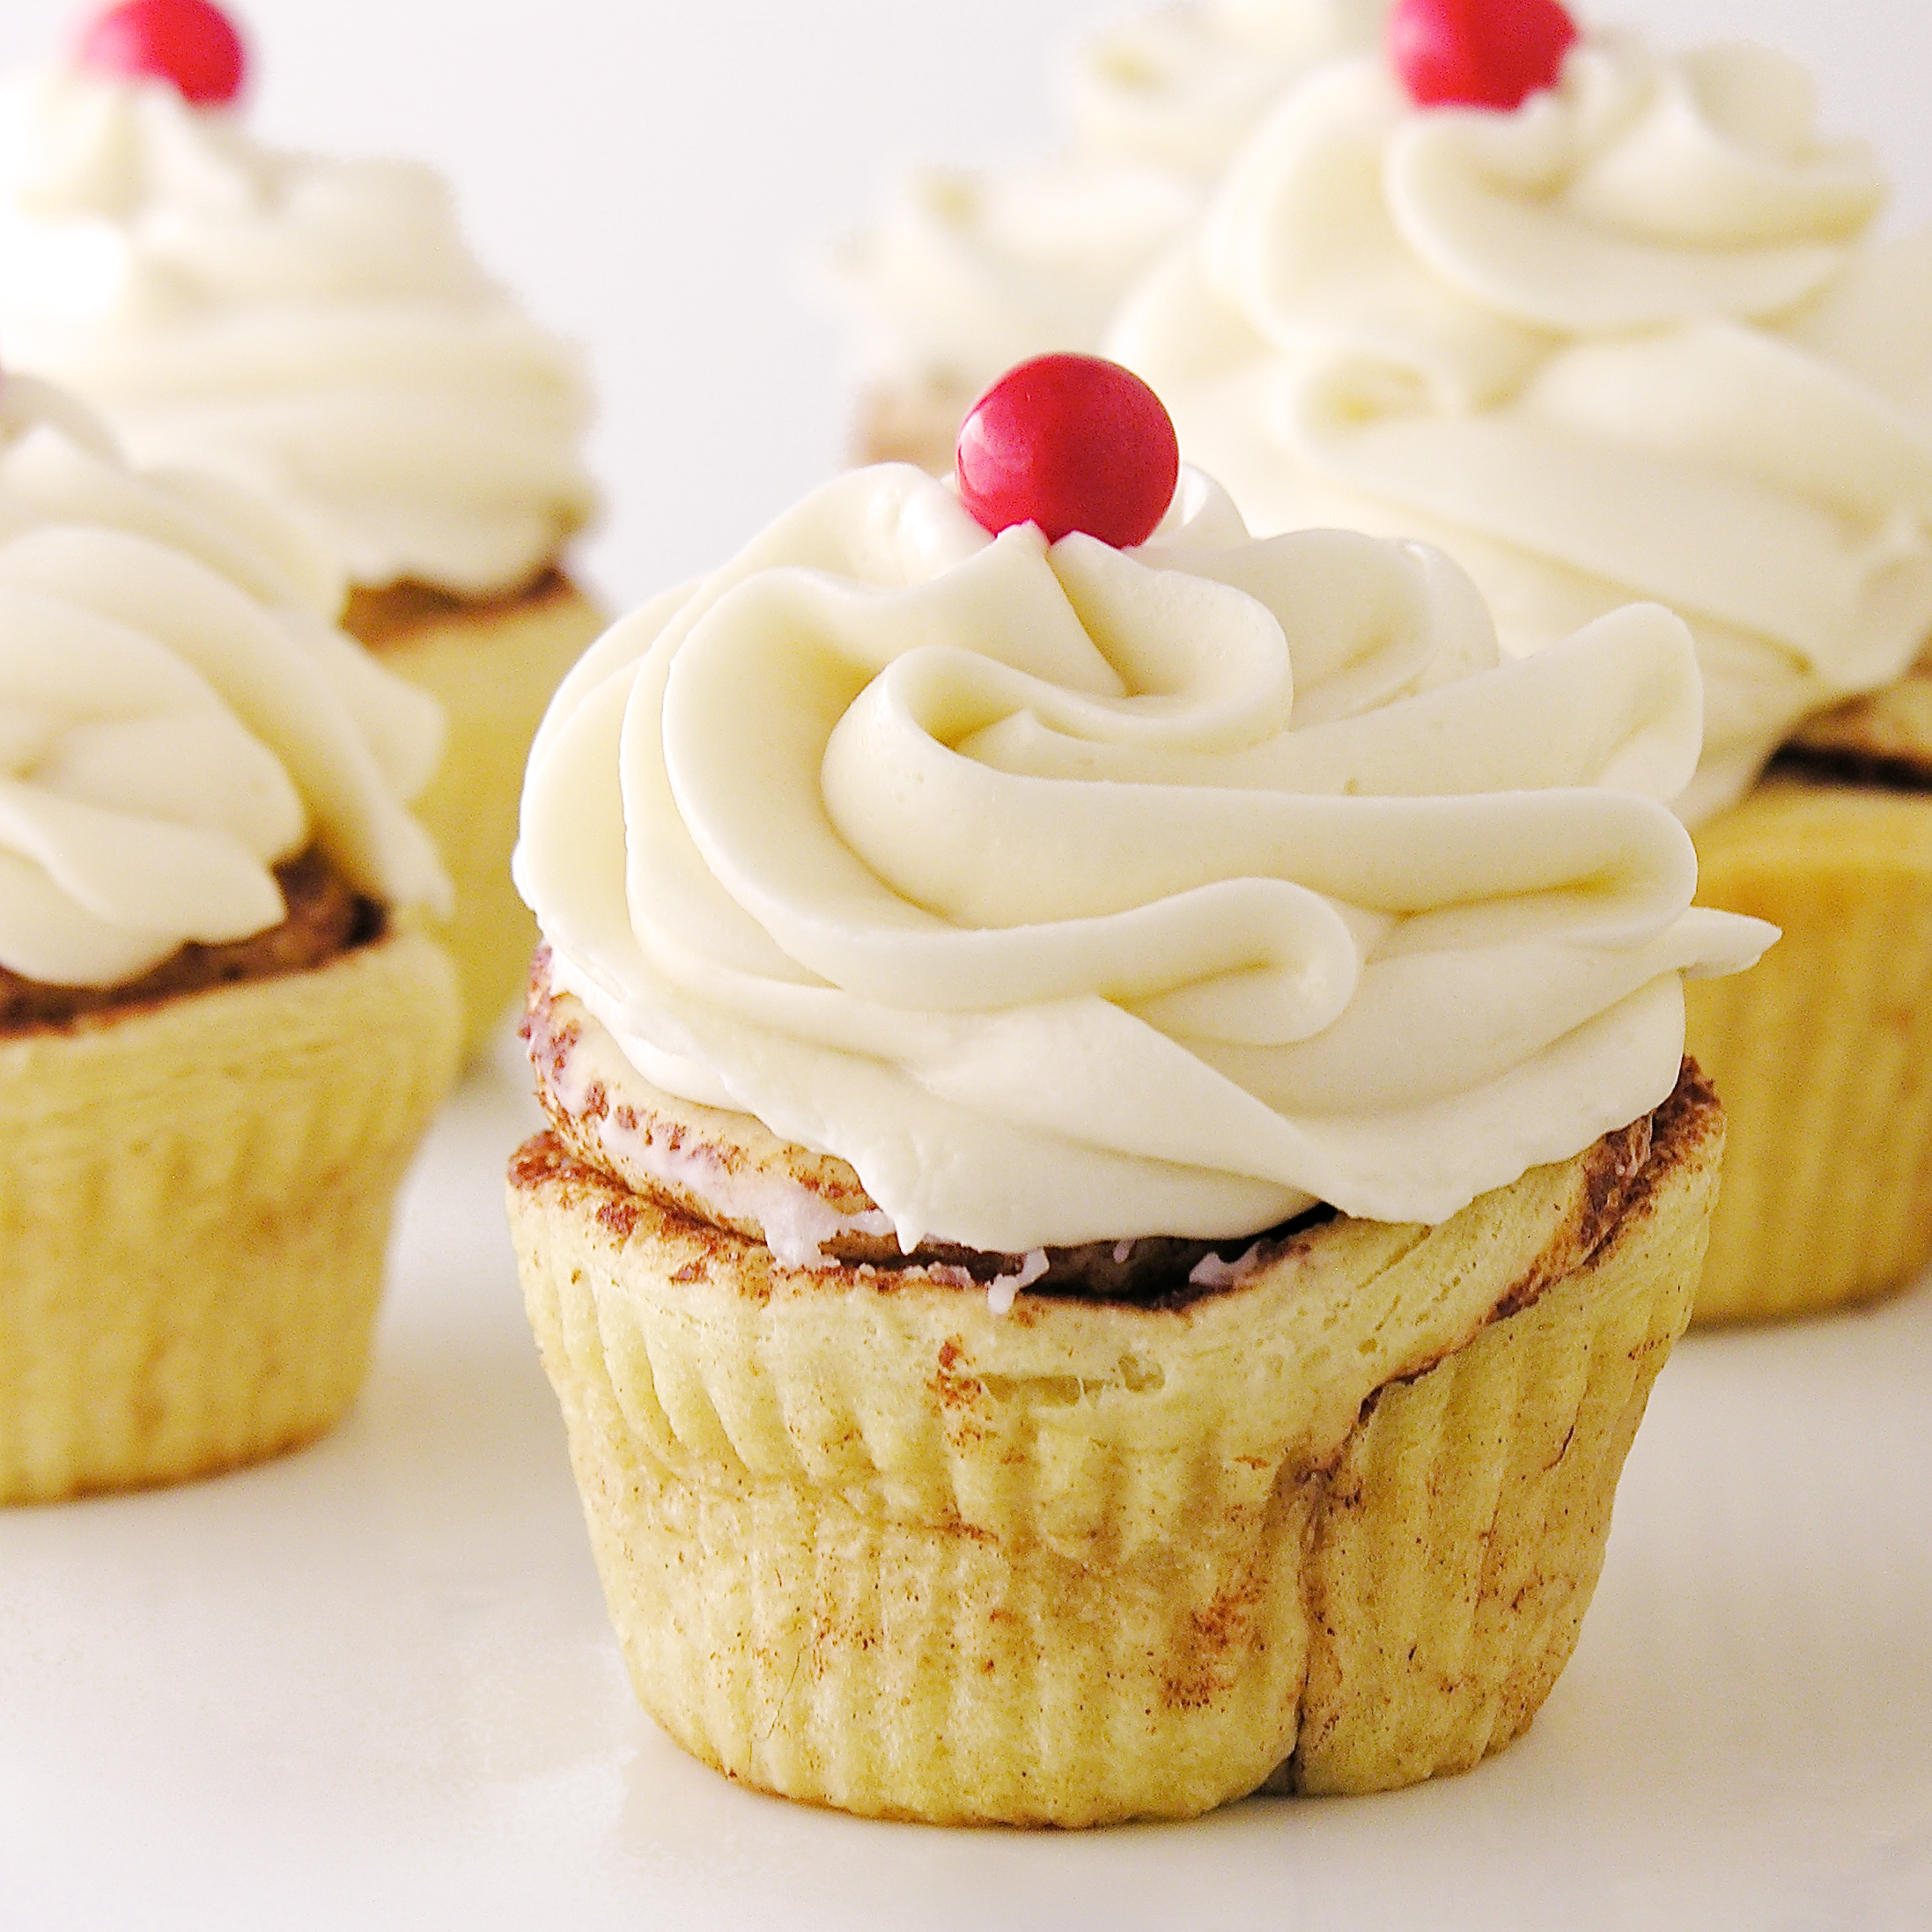 Easy Cinnamon Roll Cupcakes With Cream Cheese Frosting